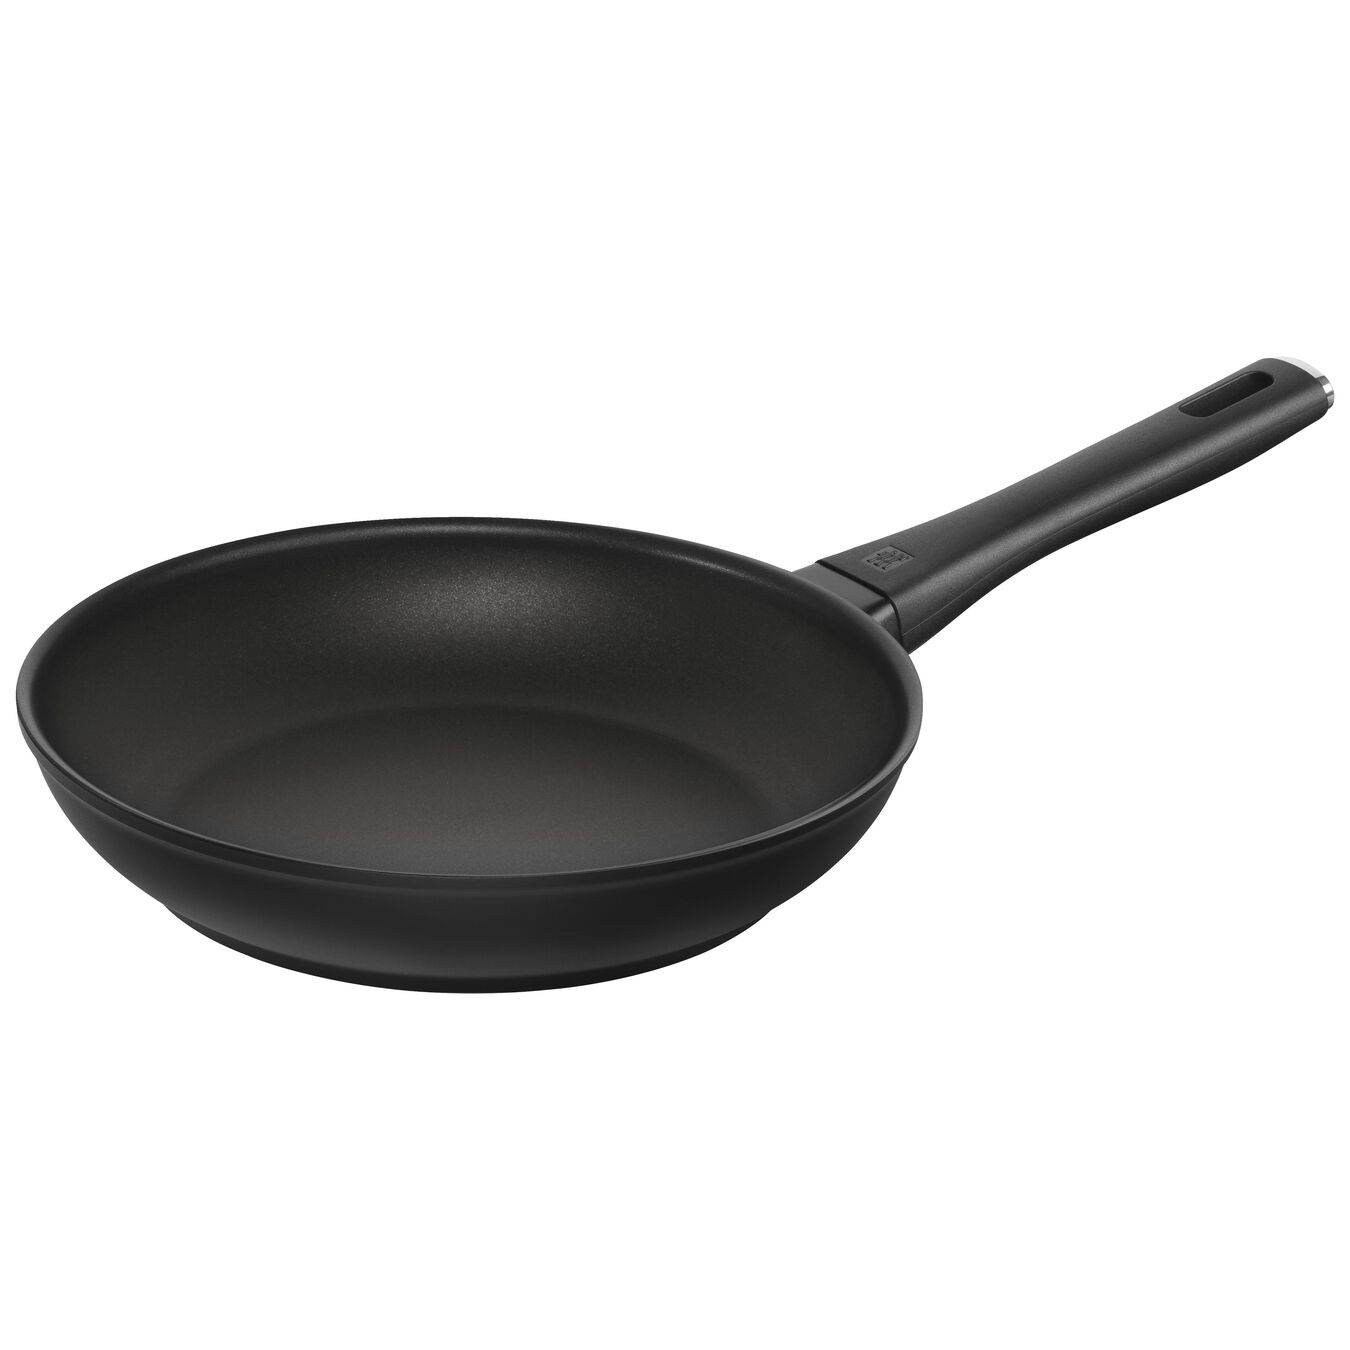 Nonstick 2-pc Fry Pan Set,,large 4